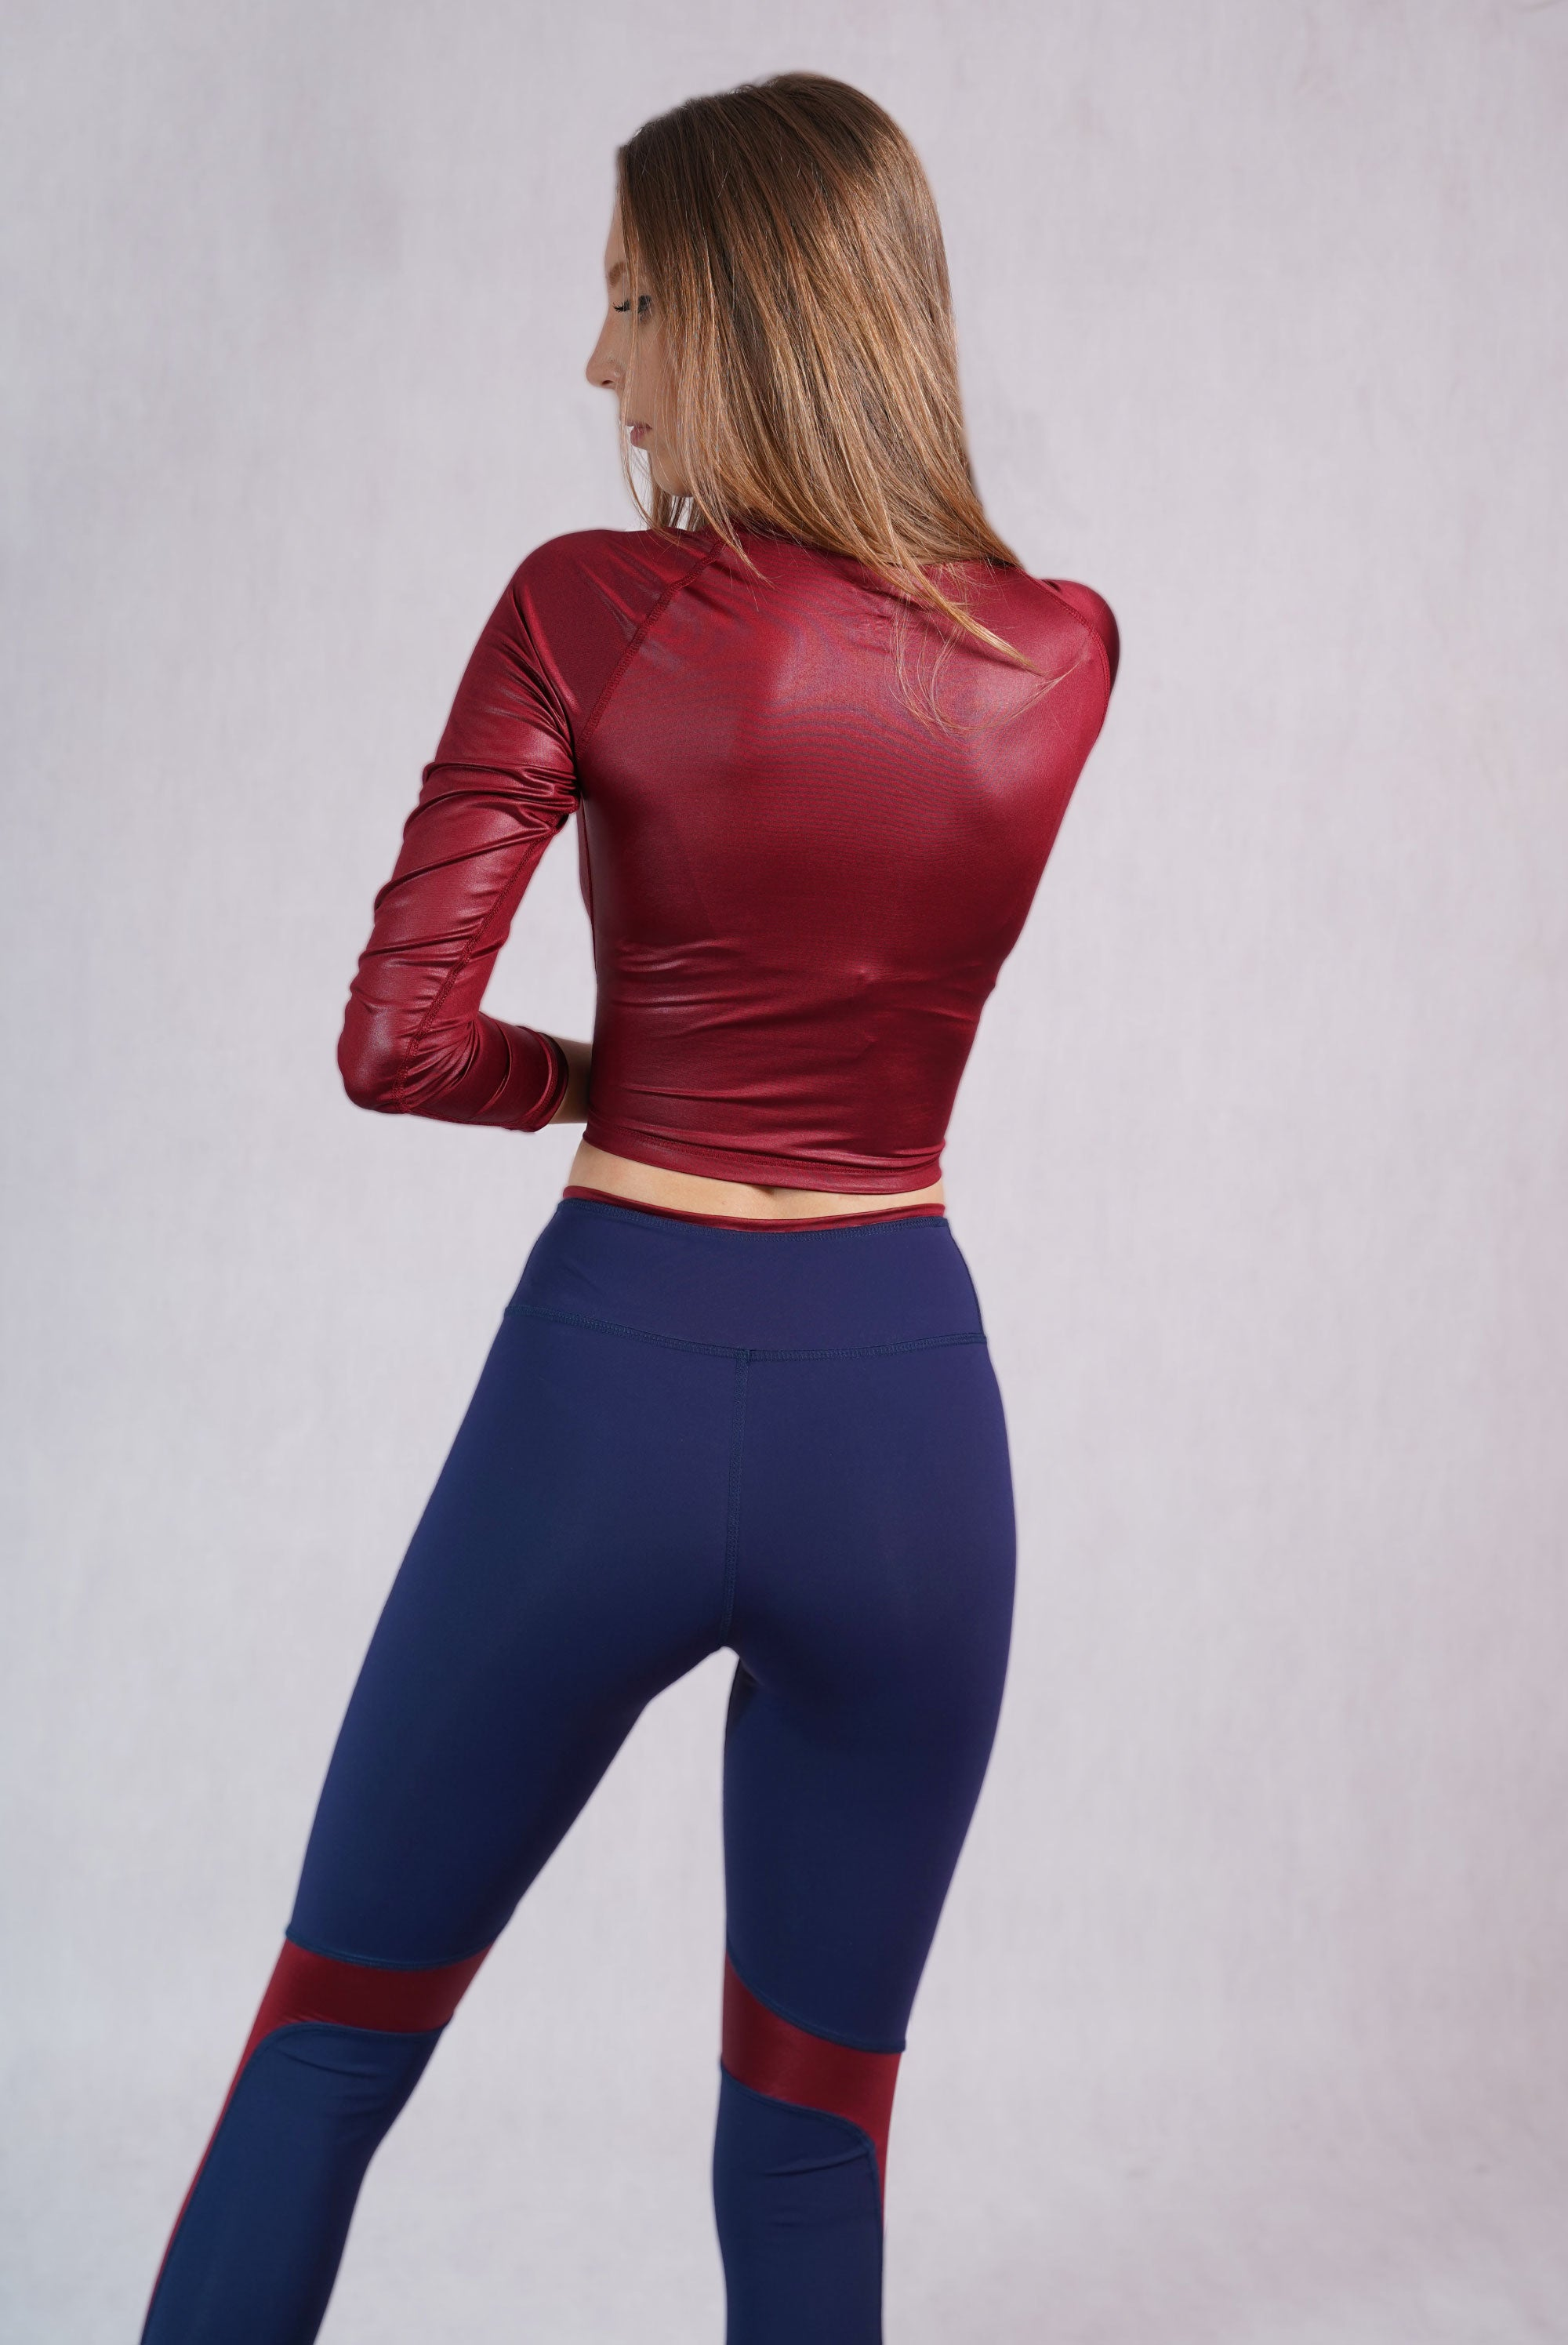 Glossy Bordeaux Slim Fit Crop Top - C142015